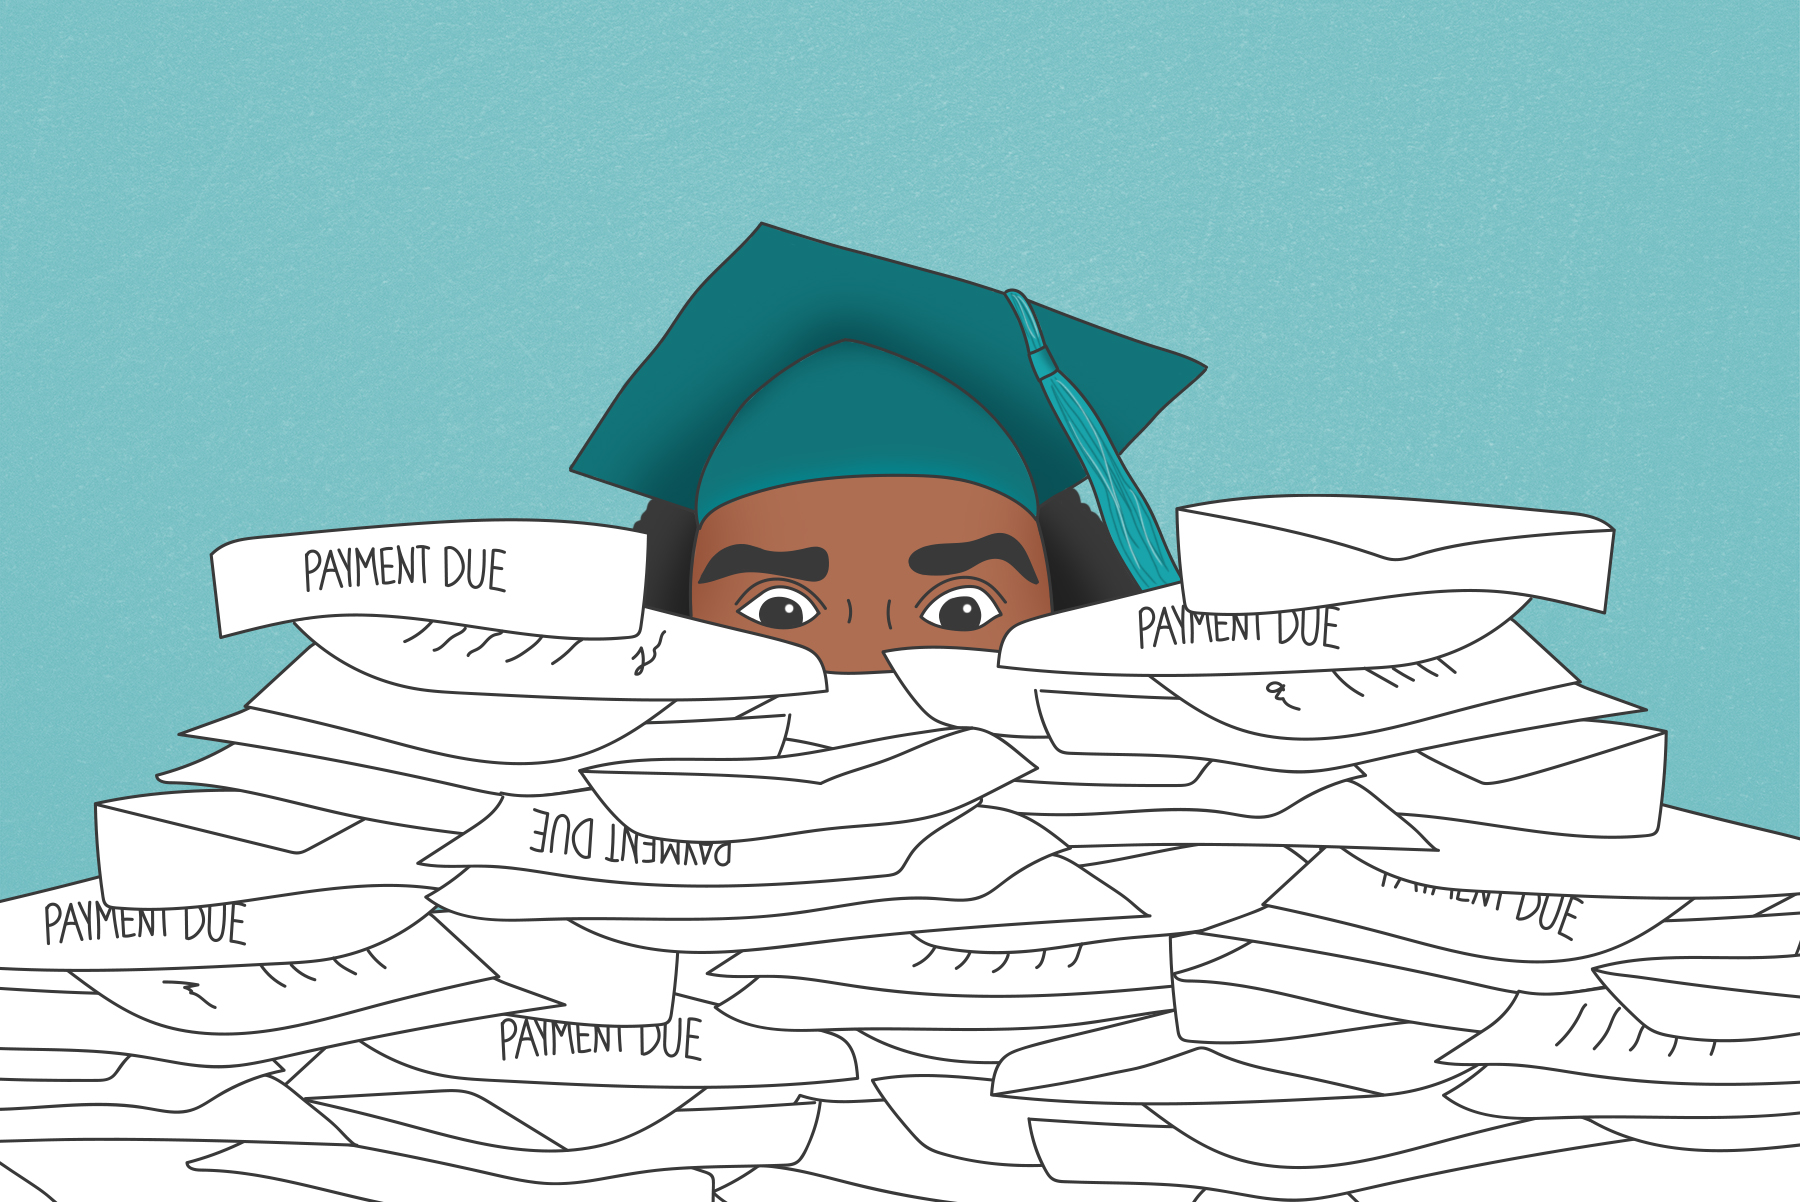 Illustration of a student wearing a graduation cap drowning in an overwhelming pile of bills and envelopes.